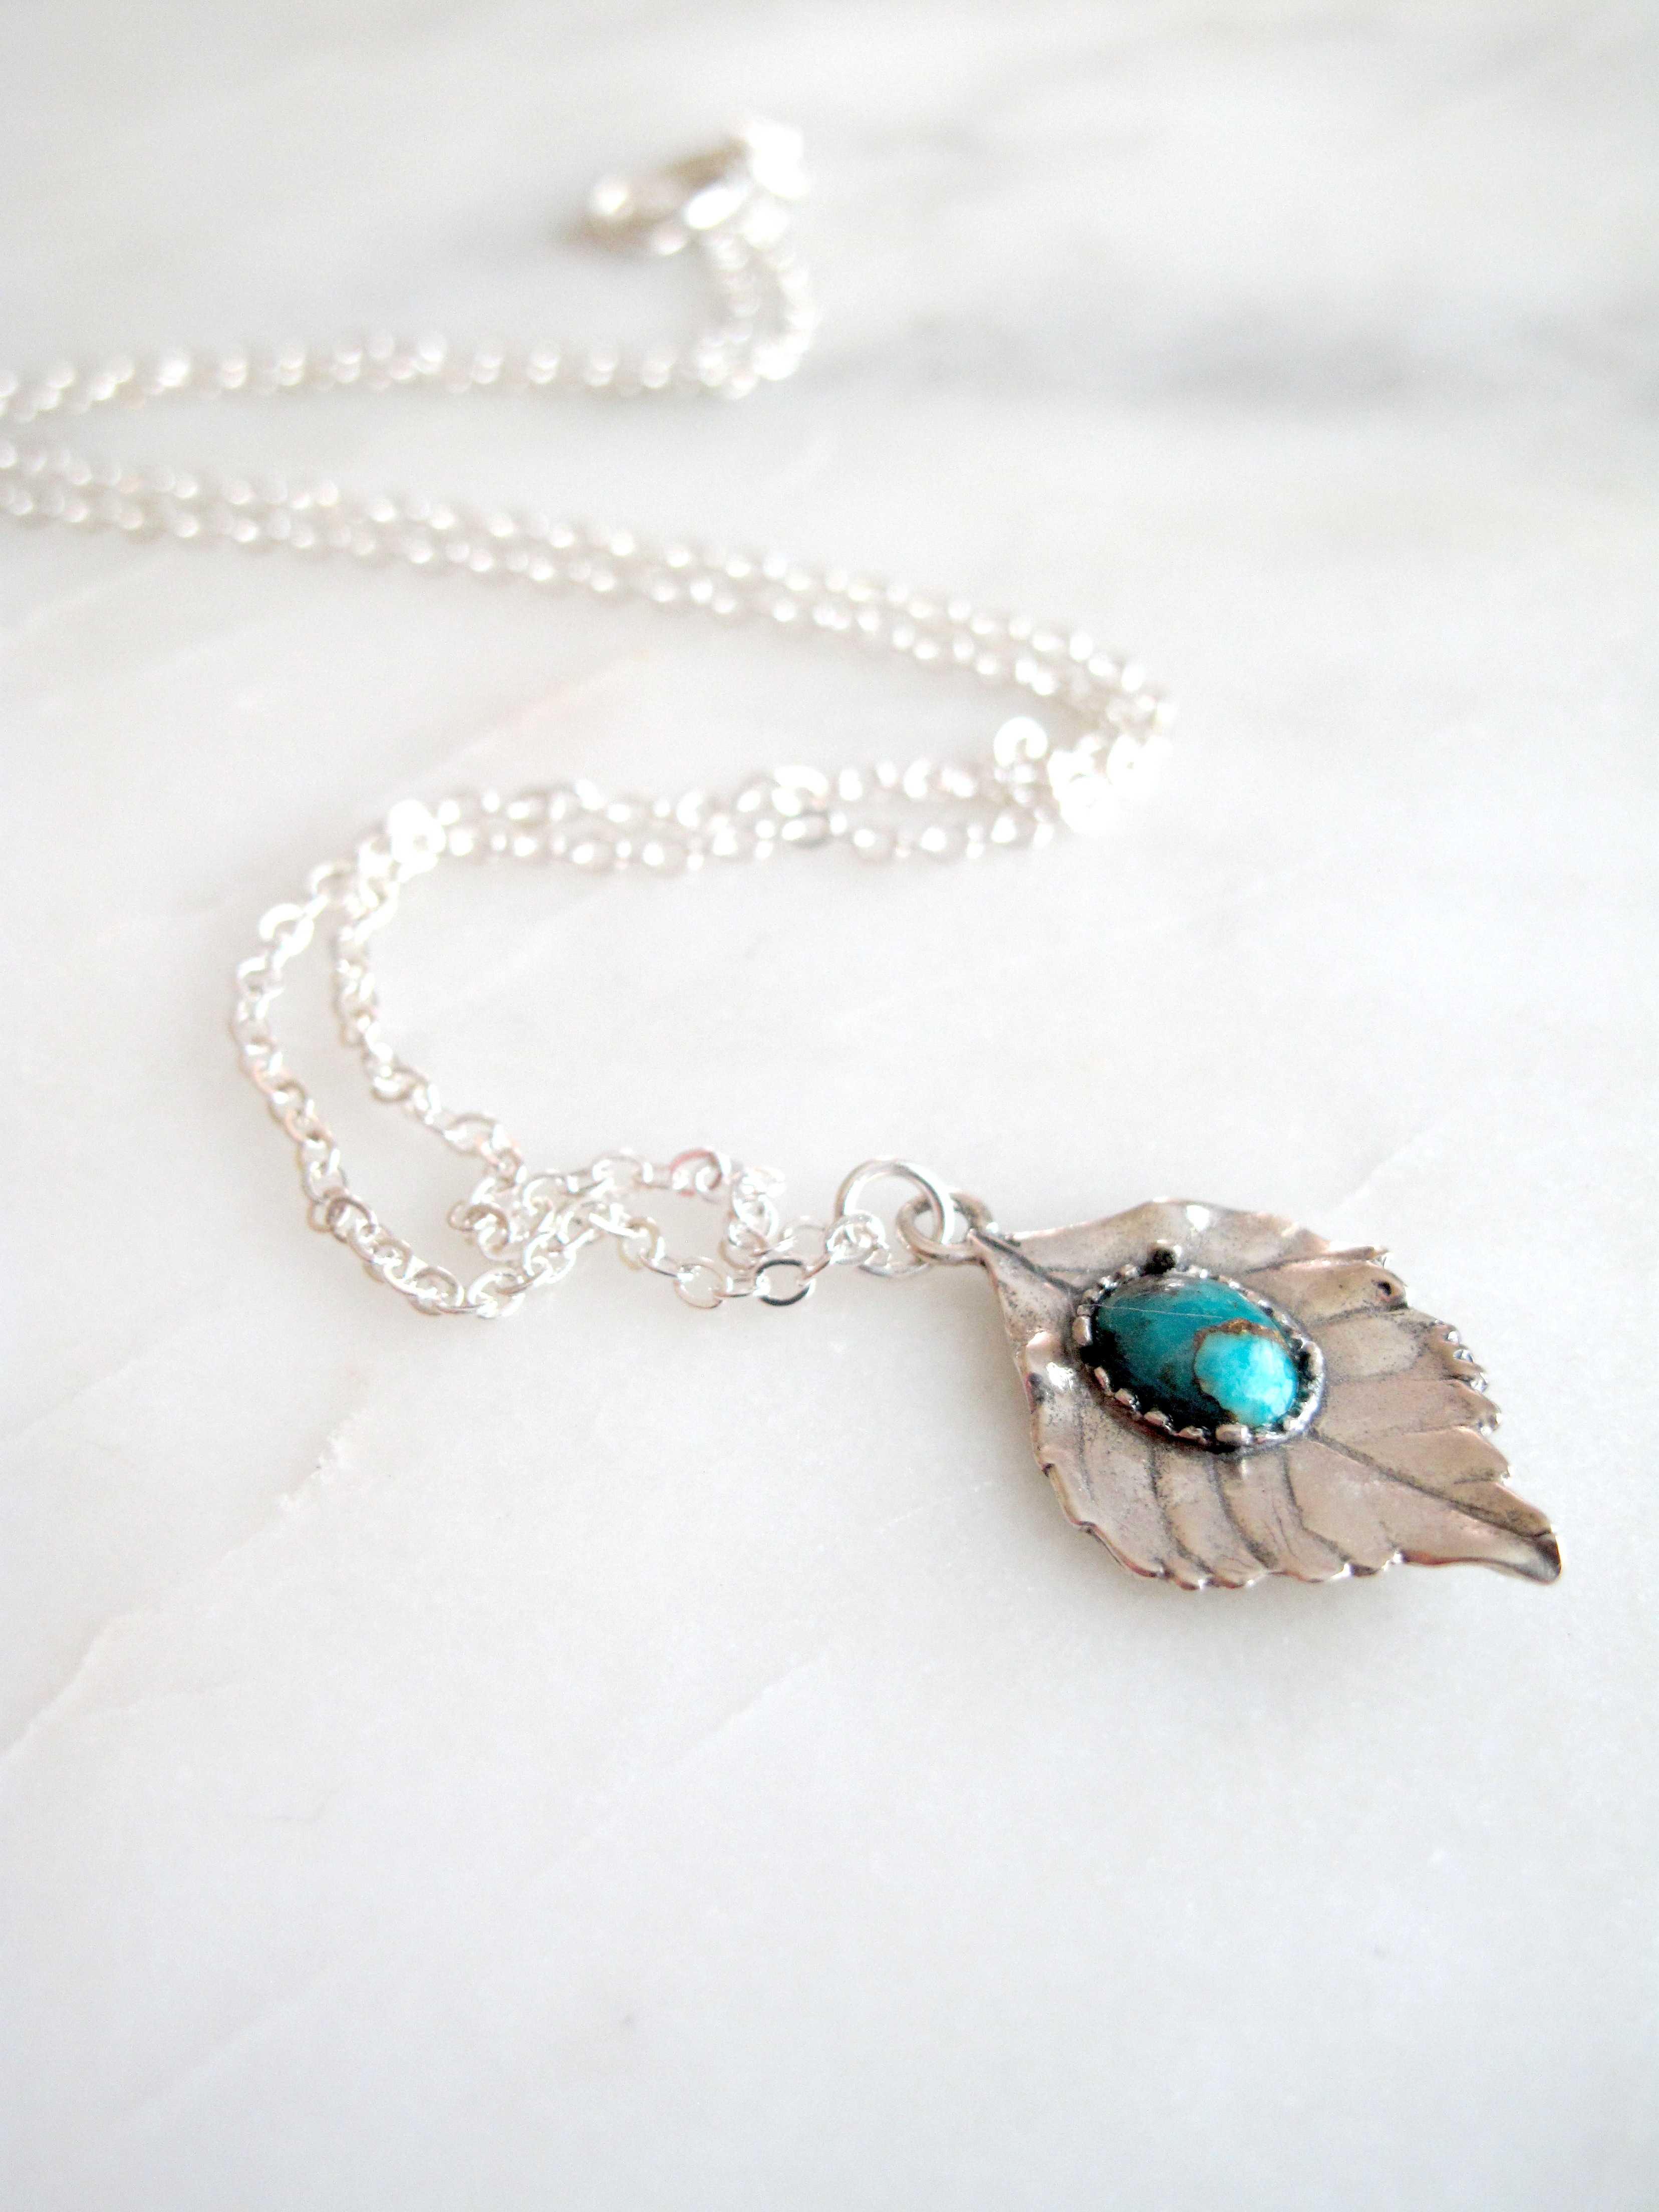 https://www.aprilalayne.com/shop/shopping/yugen-leaf-with-turquoise-drop-necklace/